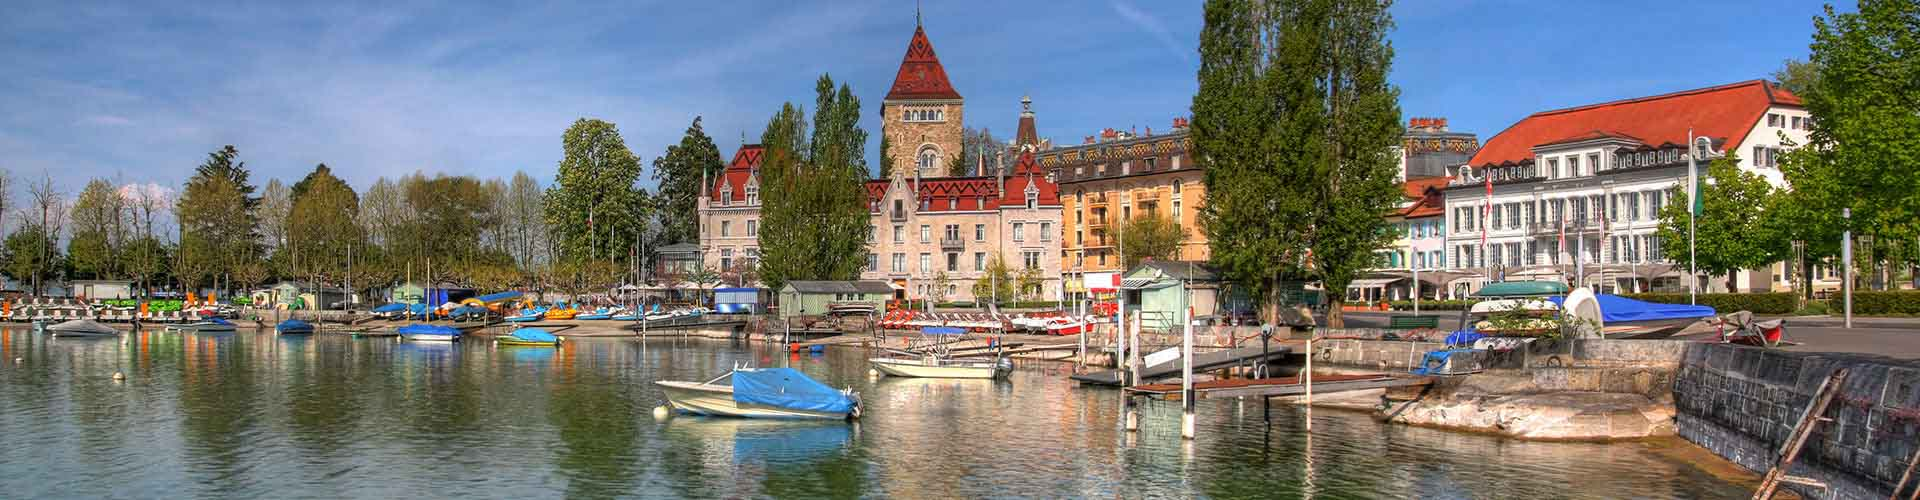 Lausanne – Hostels in Lausanne. Maps for Lausanne, Photos and Reviews for each hostel in Lausanne.